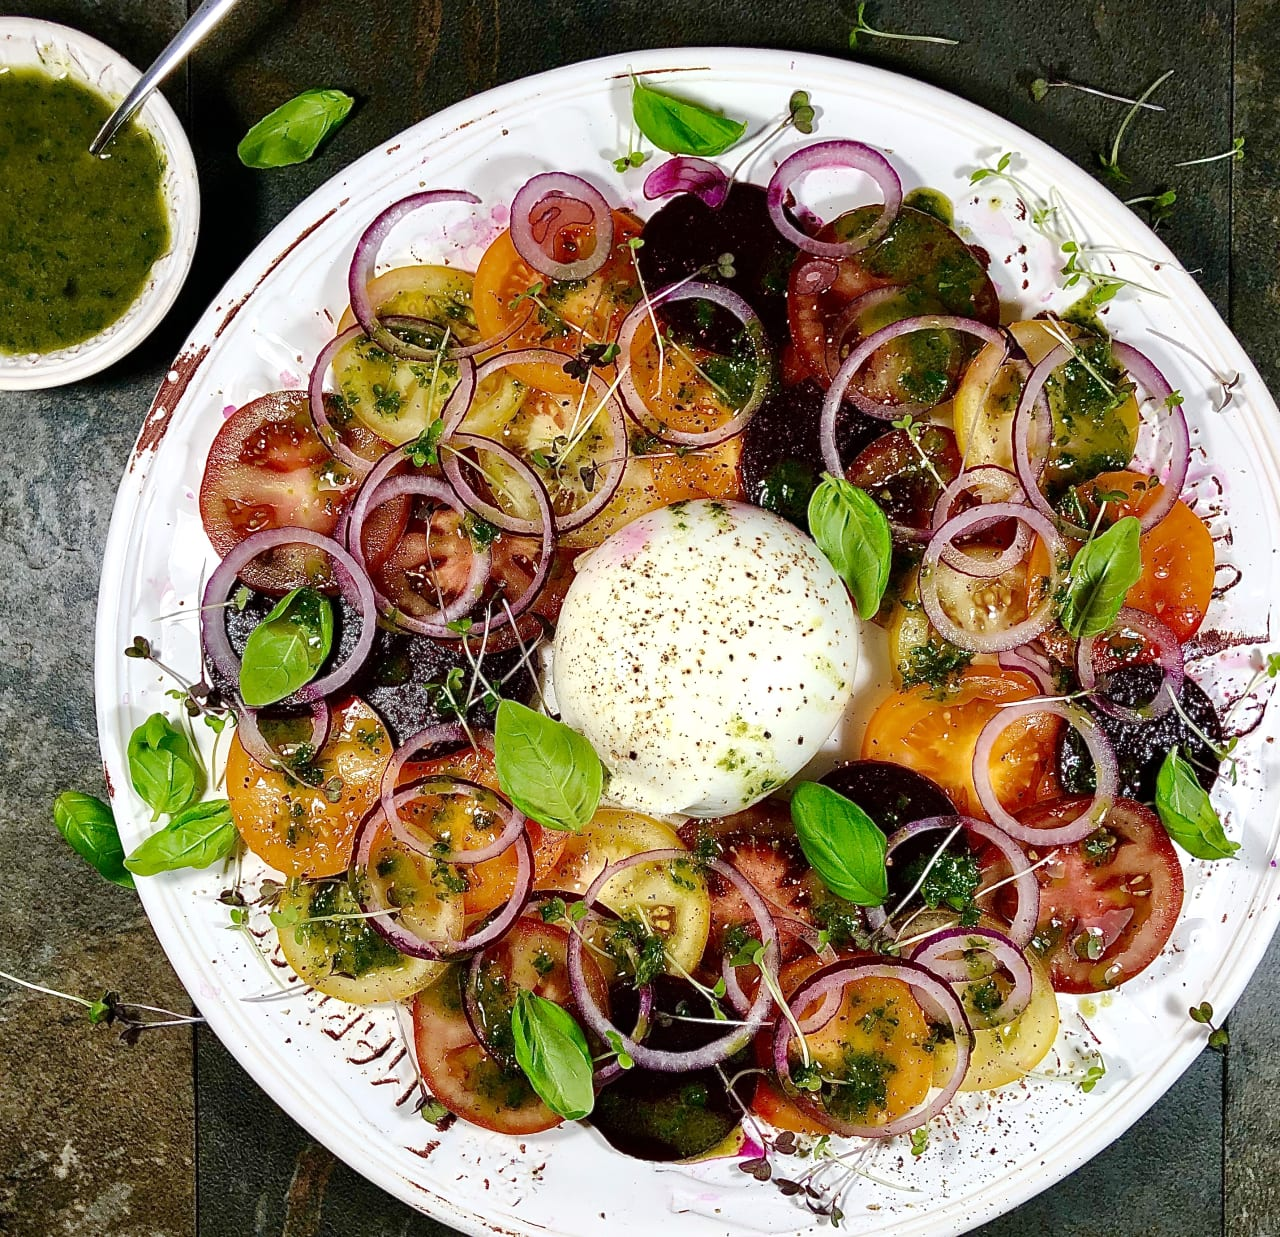 Beetroot and Tomato Salad with Burrata and Basil Oil